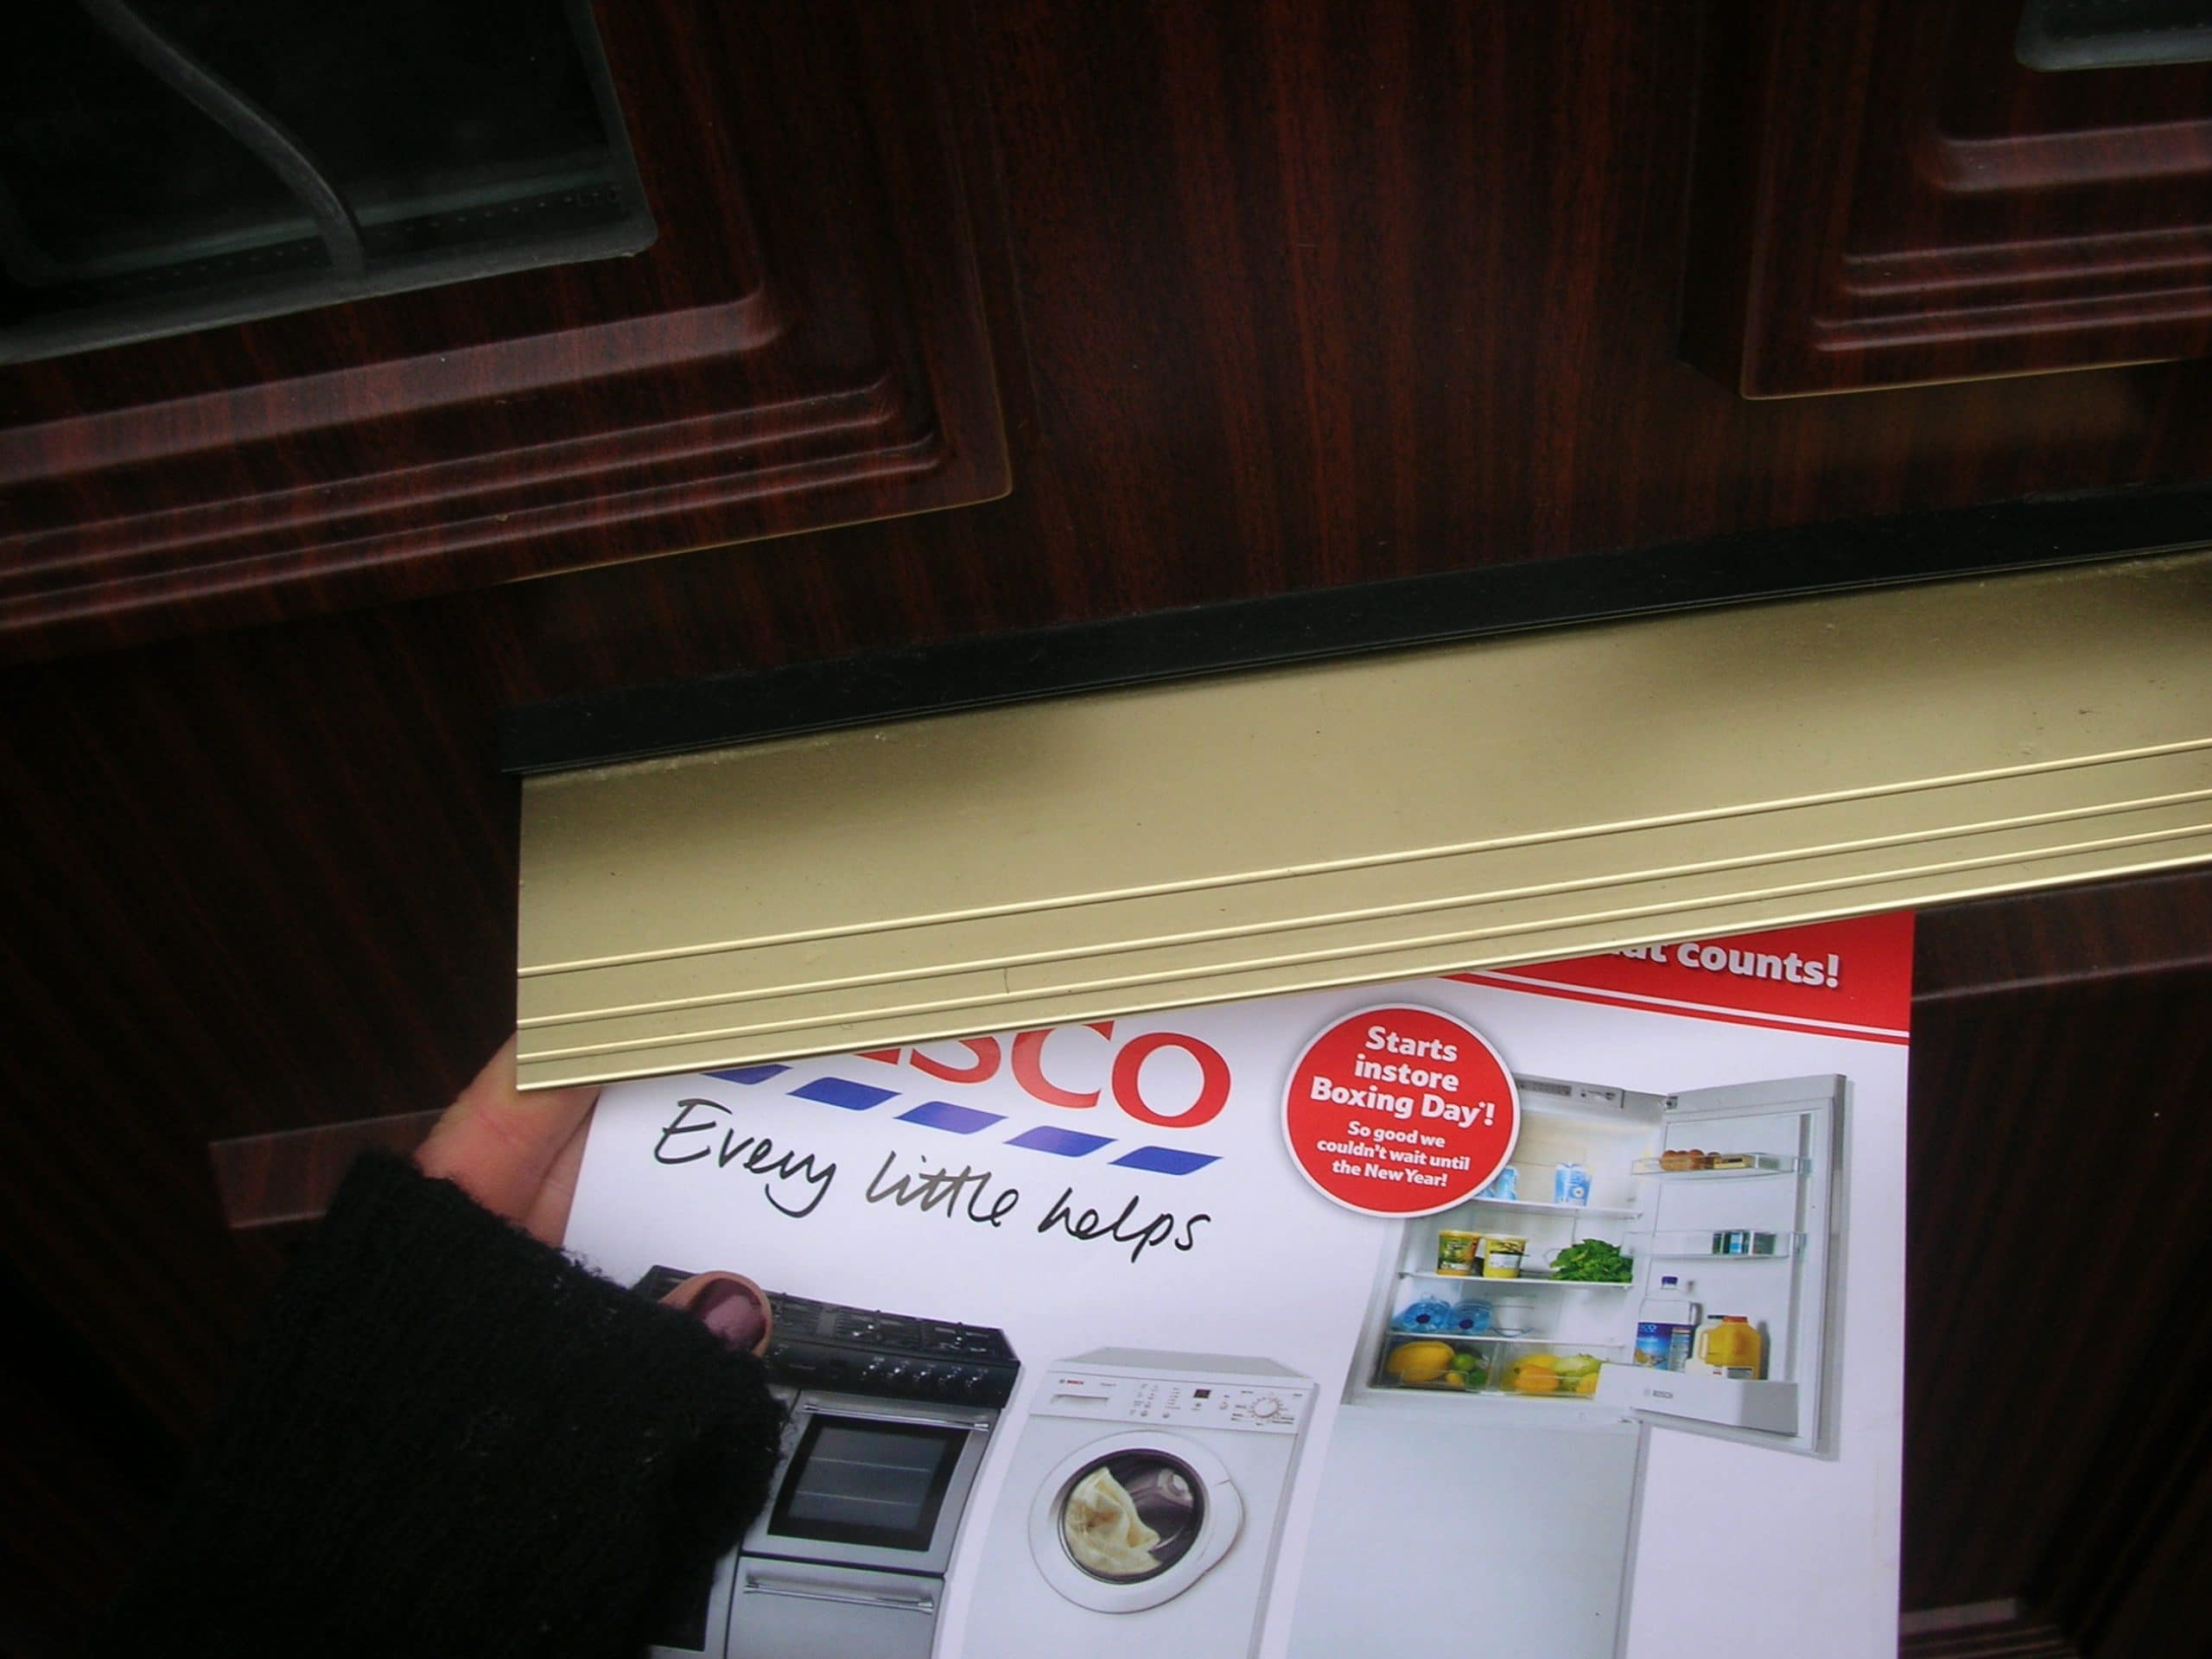 Hand to Hand Leaflet Distribution with Tesco, marketing campaign, promotion